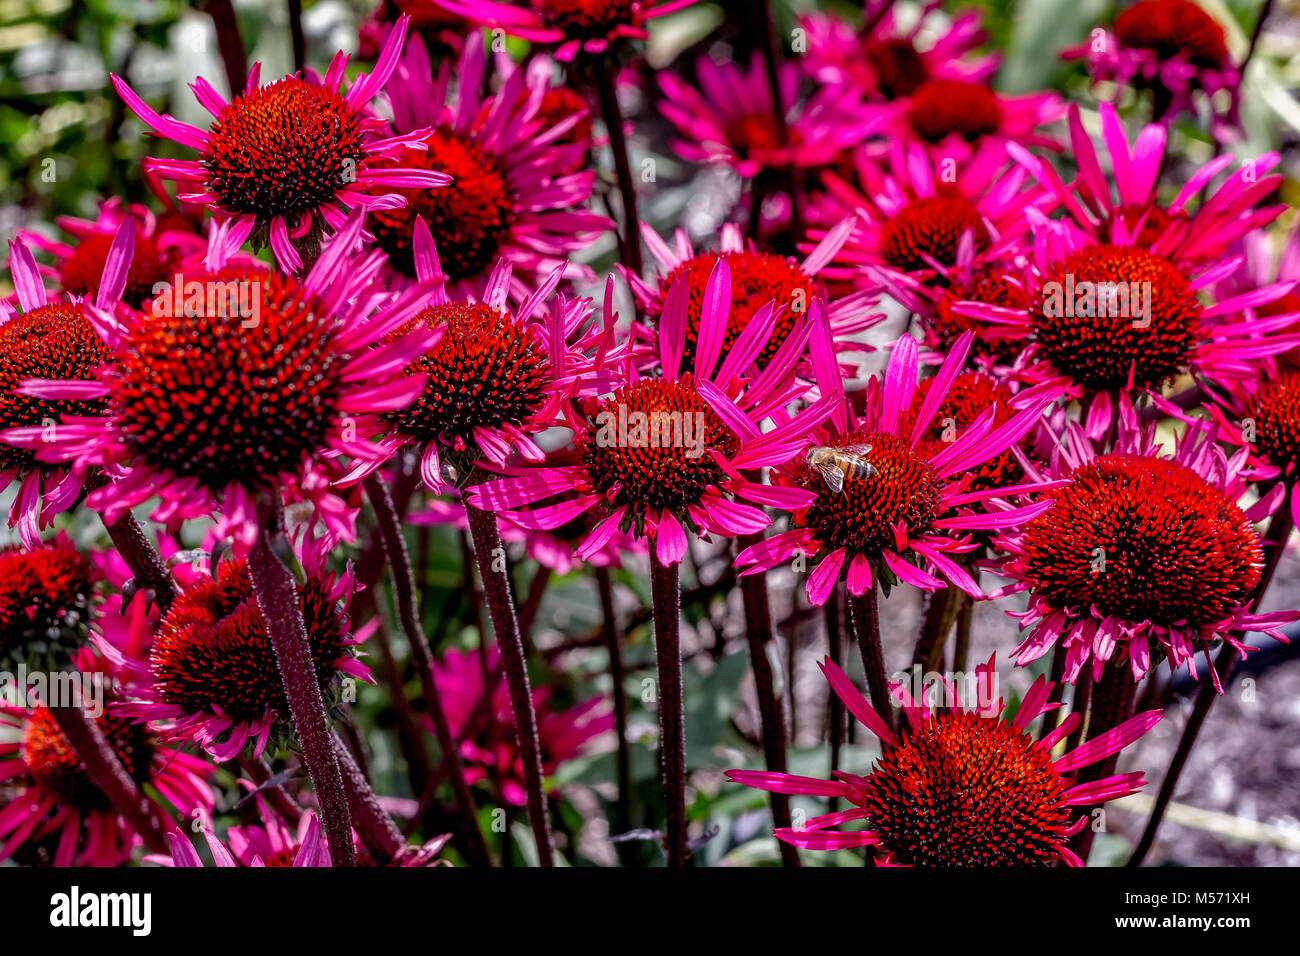 Echinacea purpurea 'Fatal Attraction' commonly known as Purple coneflower - Stock Image